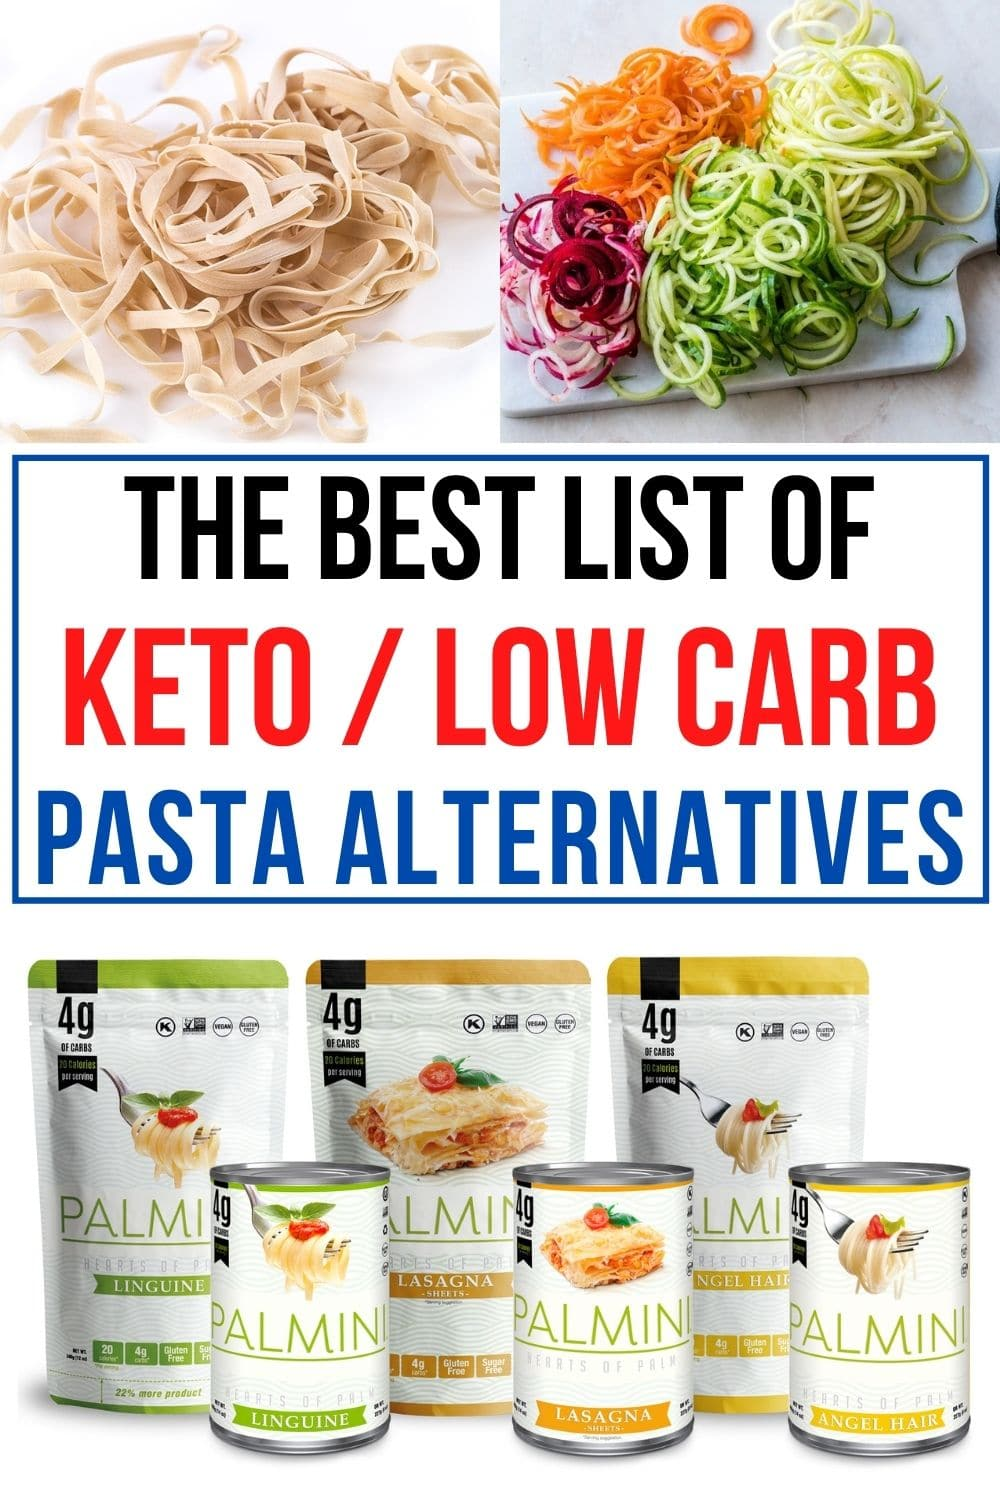 low carb pasta options in place of noodles